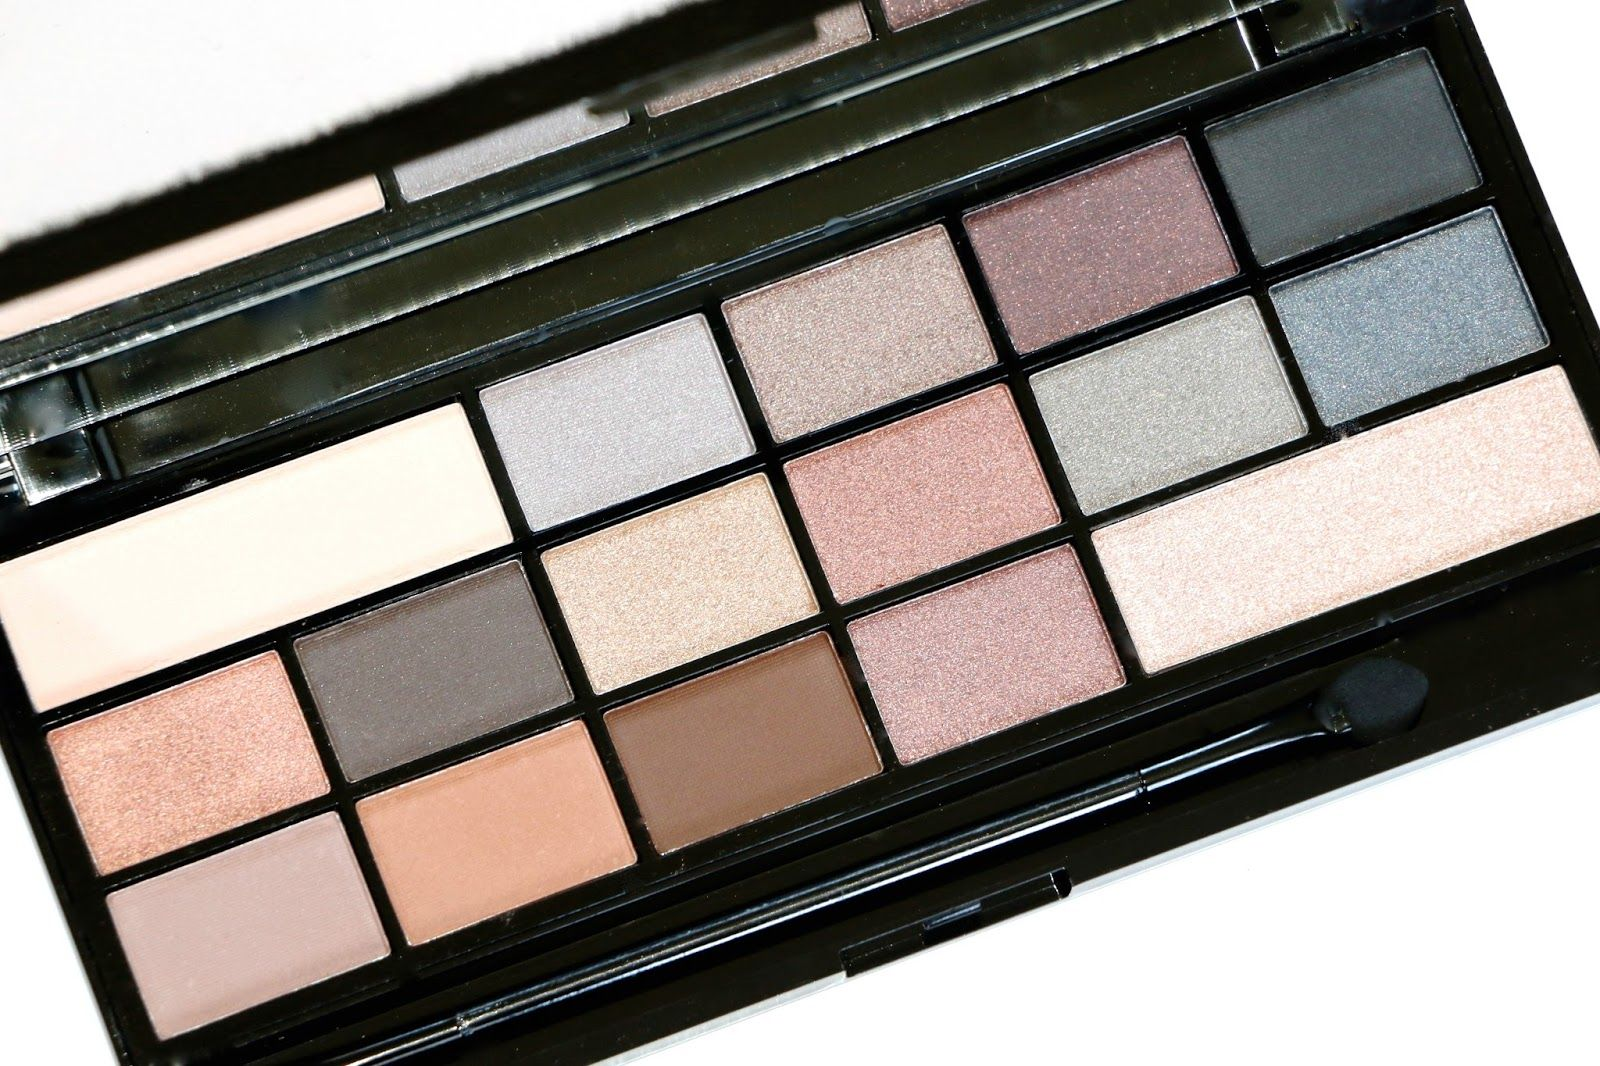 COVERGIRL Vitalist Healthy Elixir Foundation Makeup and